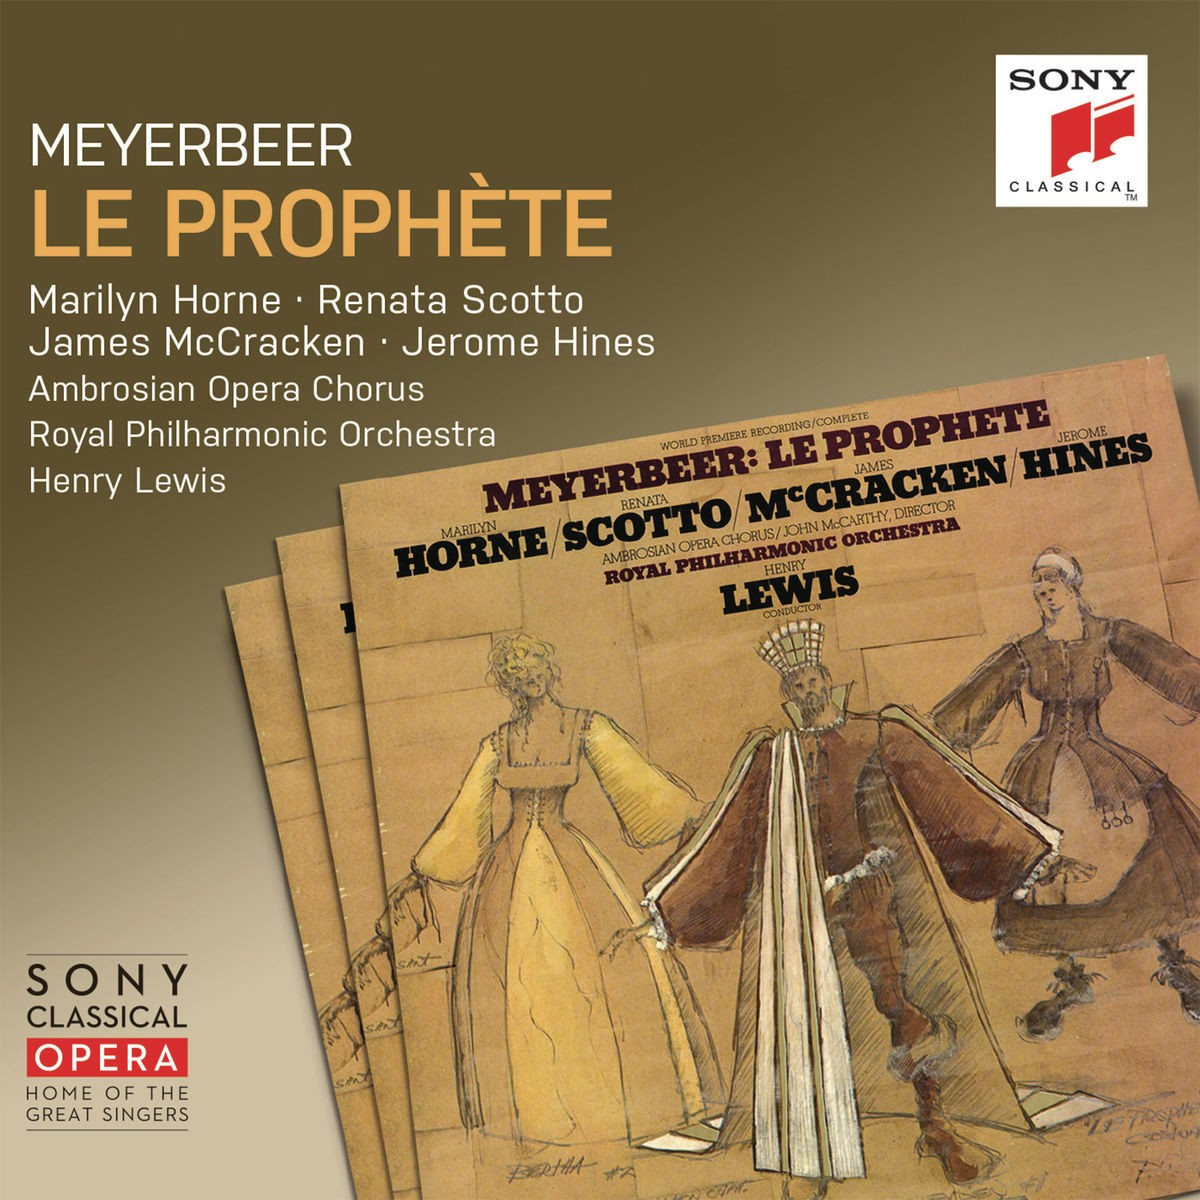 Henry Lewis & The Royal Philharmonic Orchestra - Meyerbeer: Le prophète CD - 88875194782